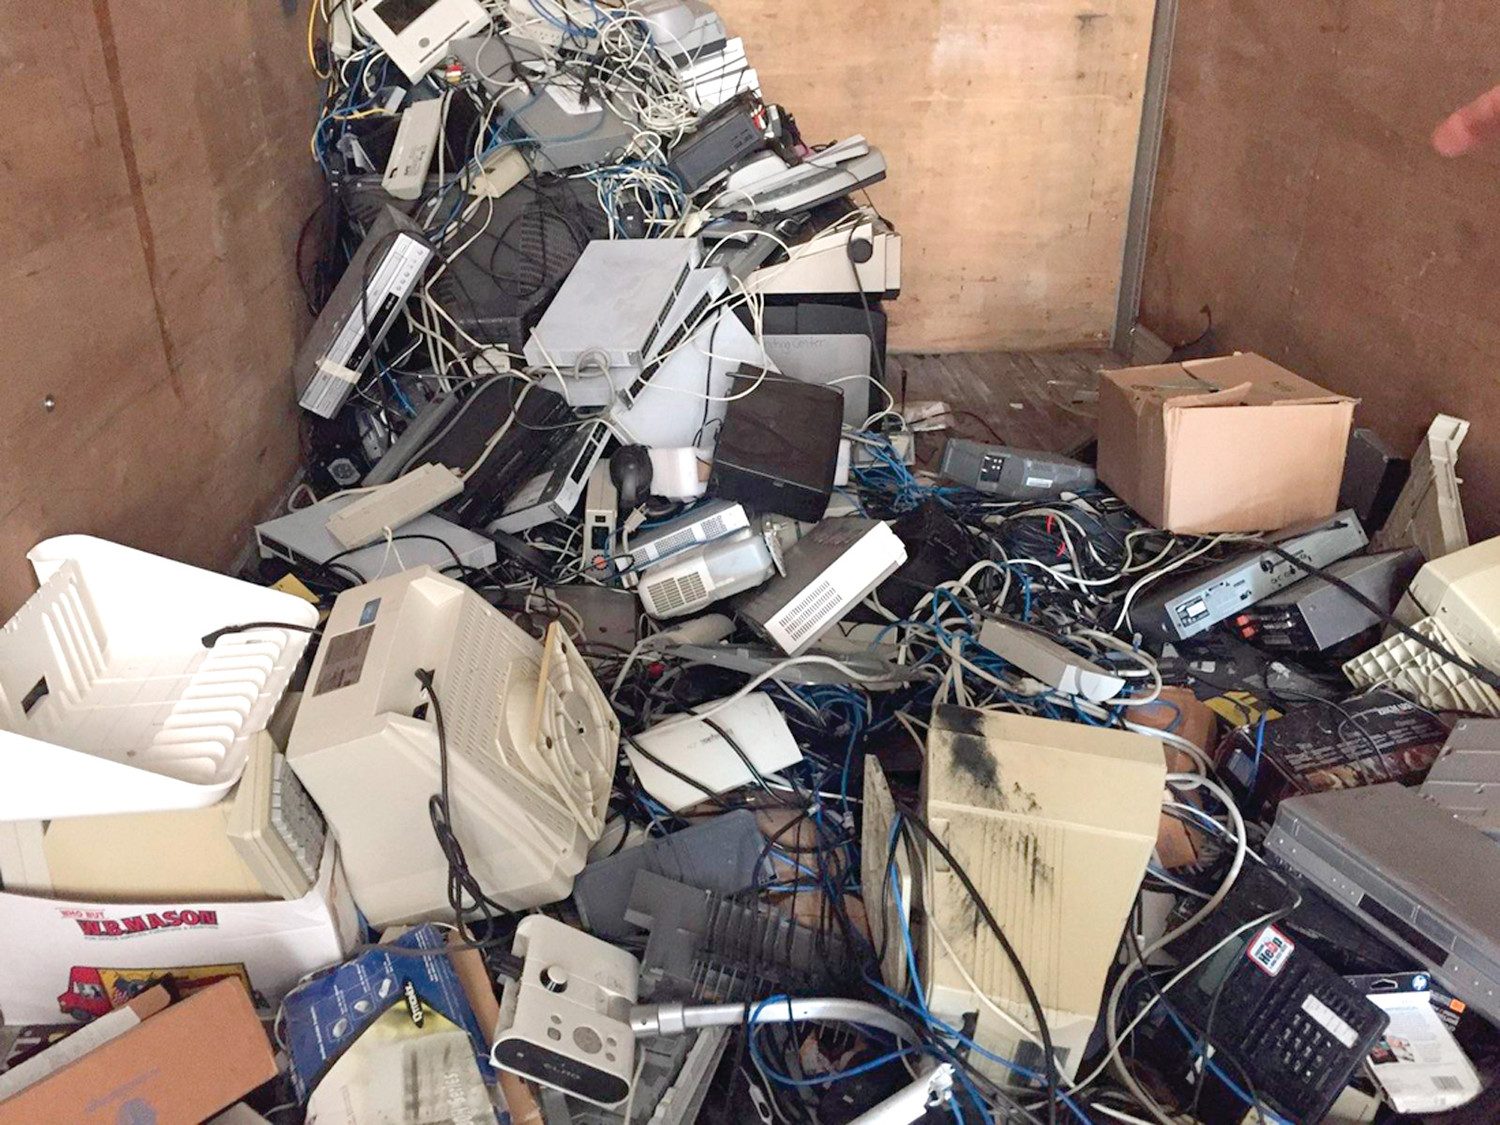 ONE MAN'S TRASH…: Darlene Netcoh shared a picture of a storage container behind Toll Gate High School that was piled with e-wasted technology, some of which she said was purchased as recently as 2016.